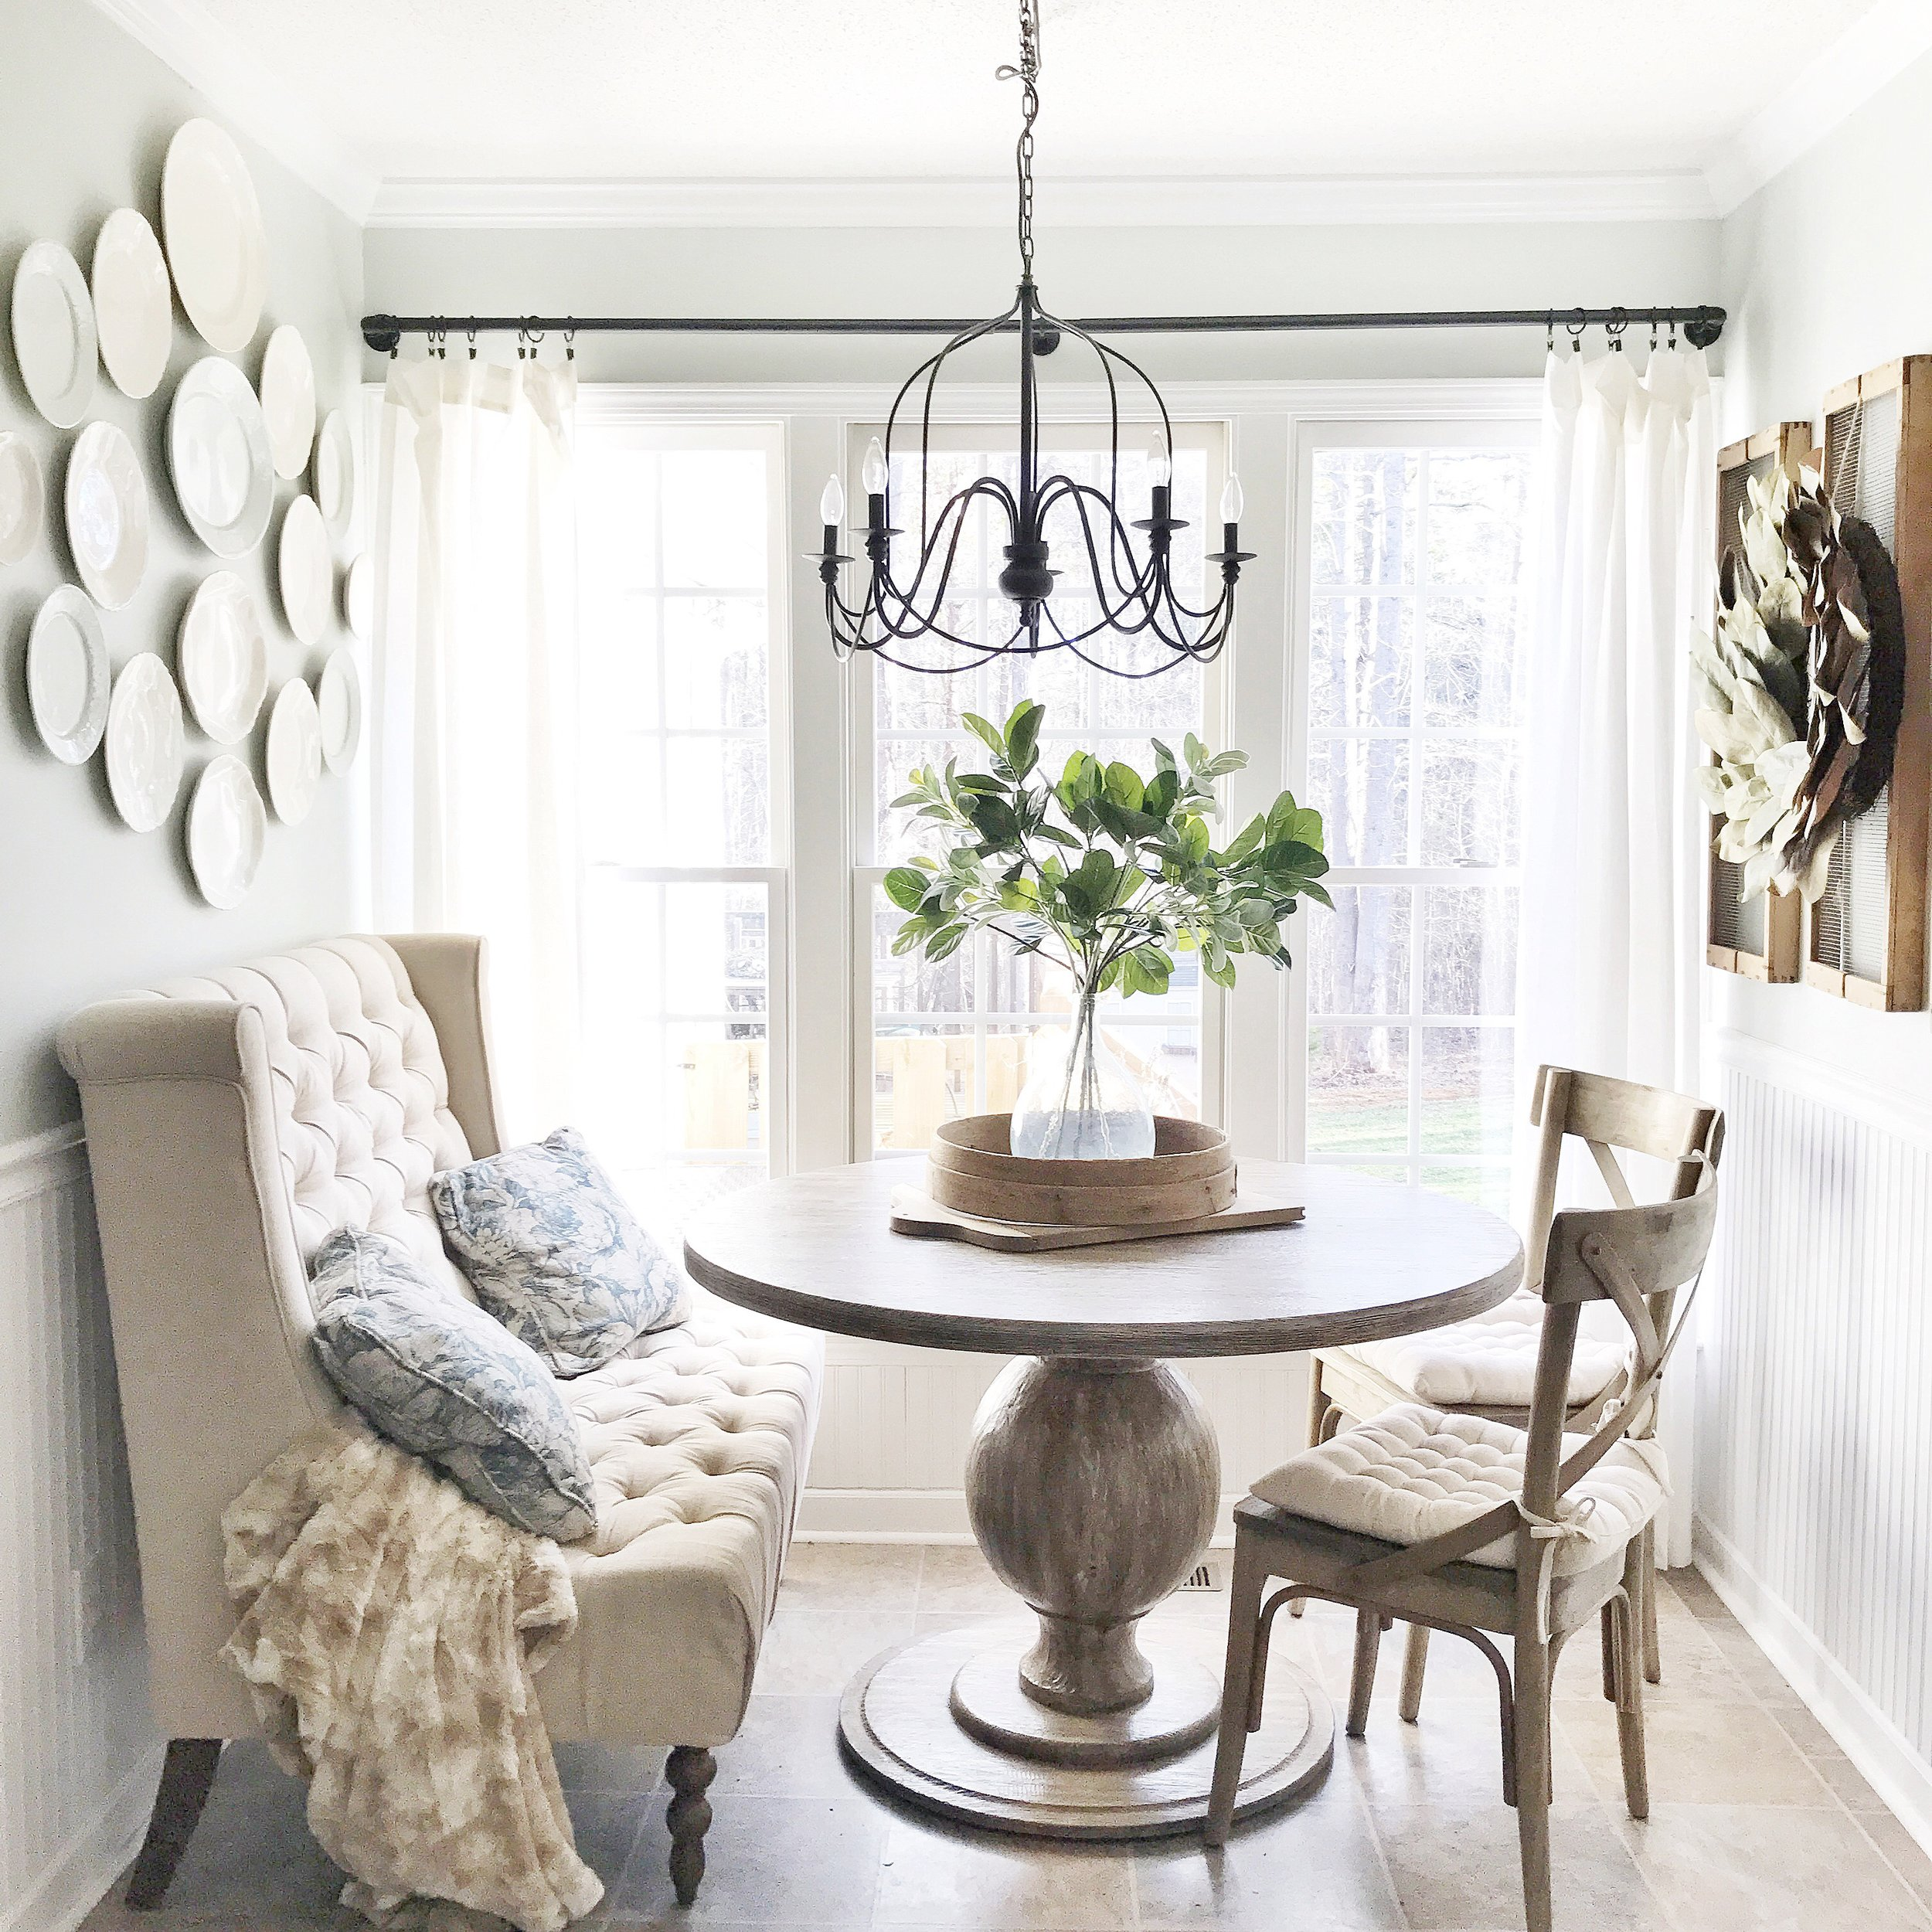 Farmshouse Breakfast Nook with a French Flair- How Adding Linen Curtains Really Cozied Up the Space. Read More on Plum Pretty Decor and Design's Blog.